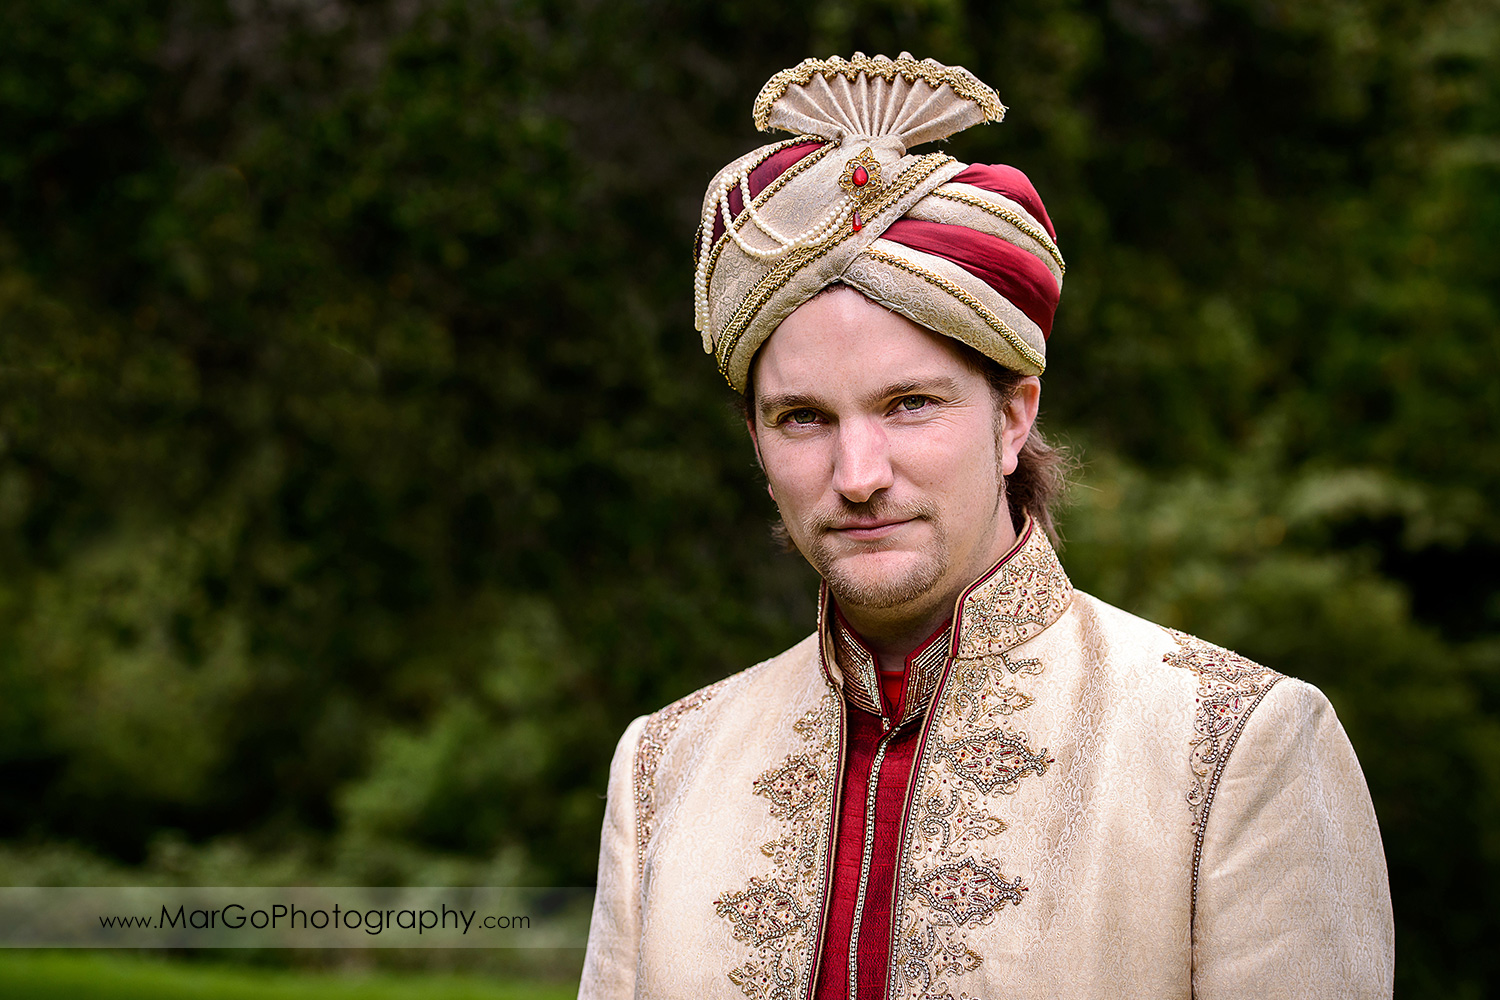 portrait of the groom at Indian wedding at Tilden Regional Park, Berkeley